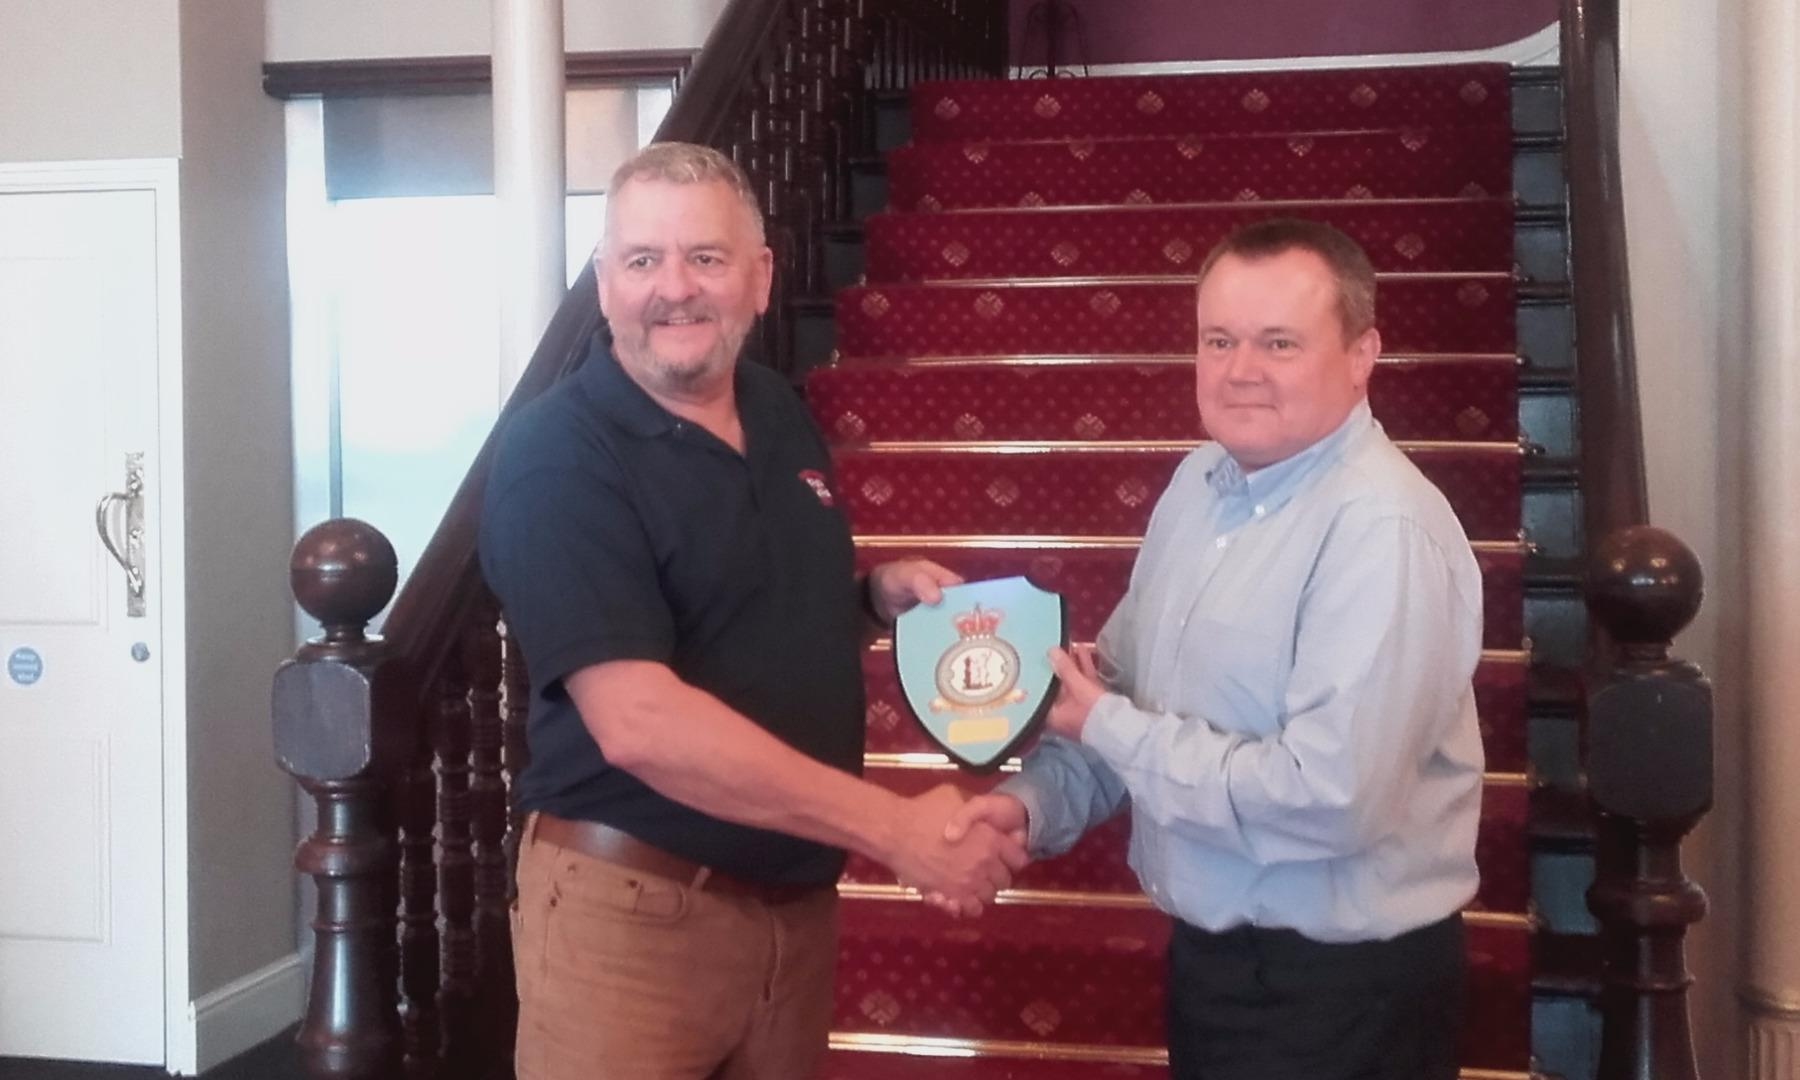 Fleetwood RNLI Captain David Eccles receiving the 605 Squadron shield from Wing Commander Paul Bell